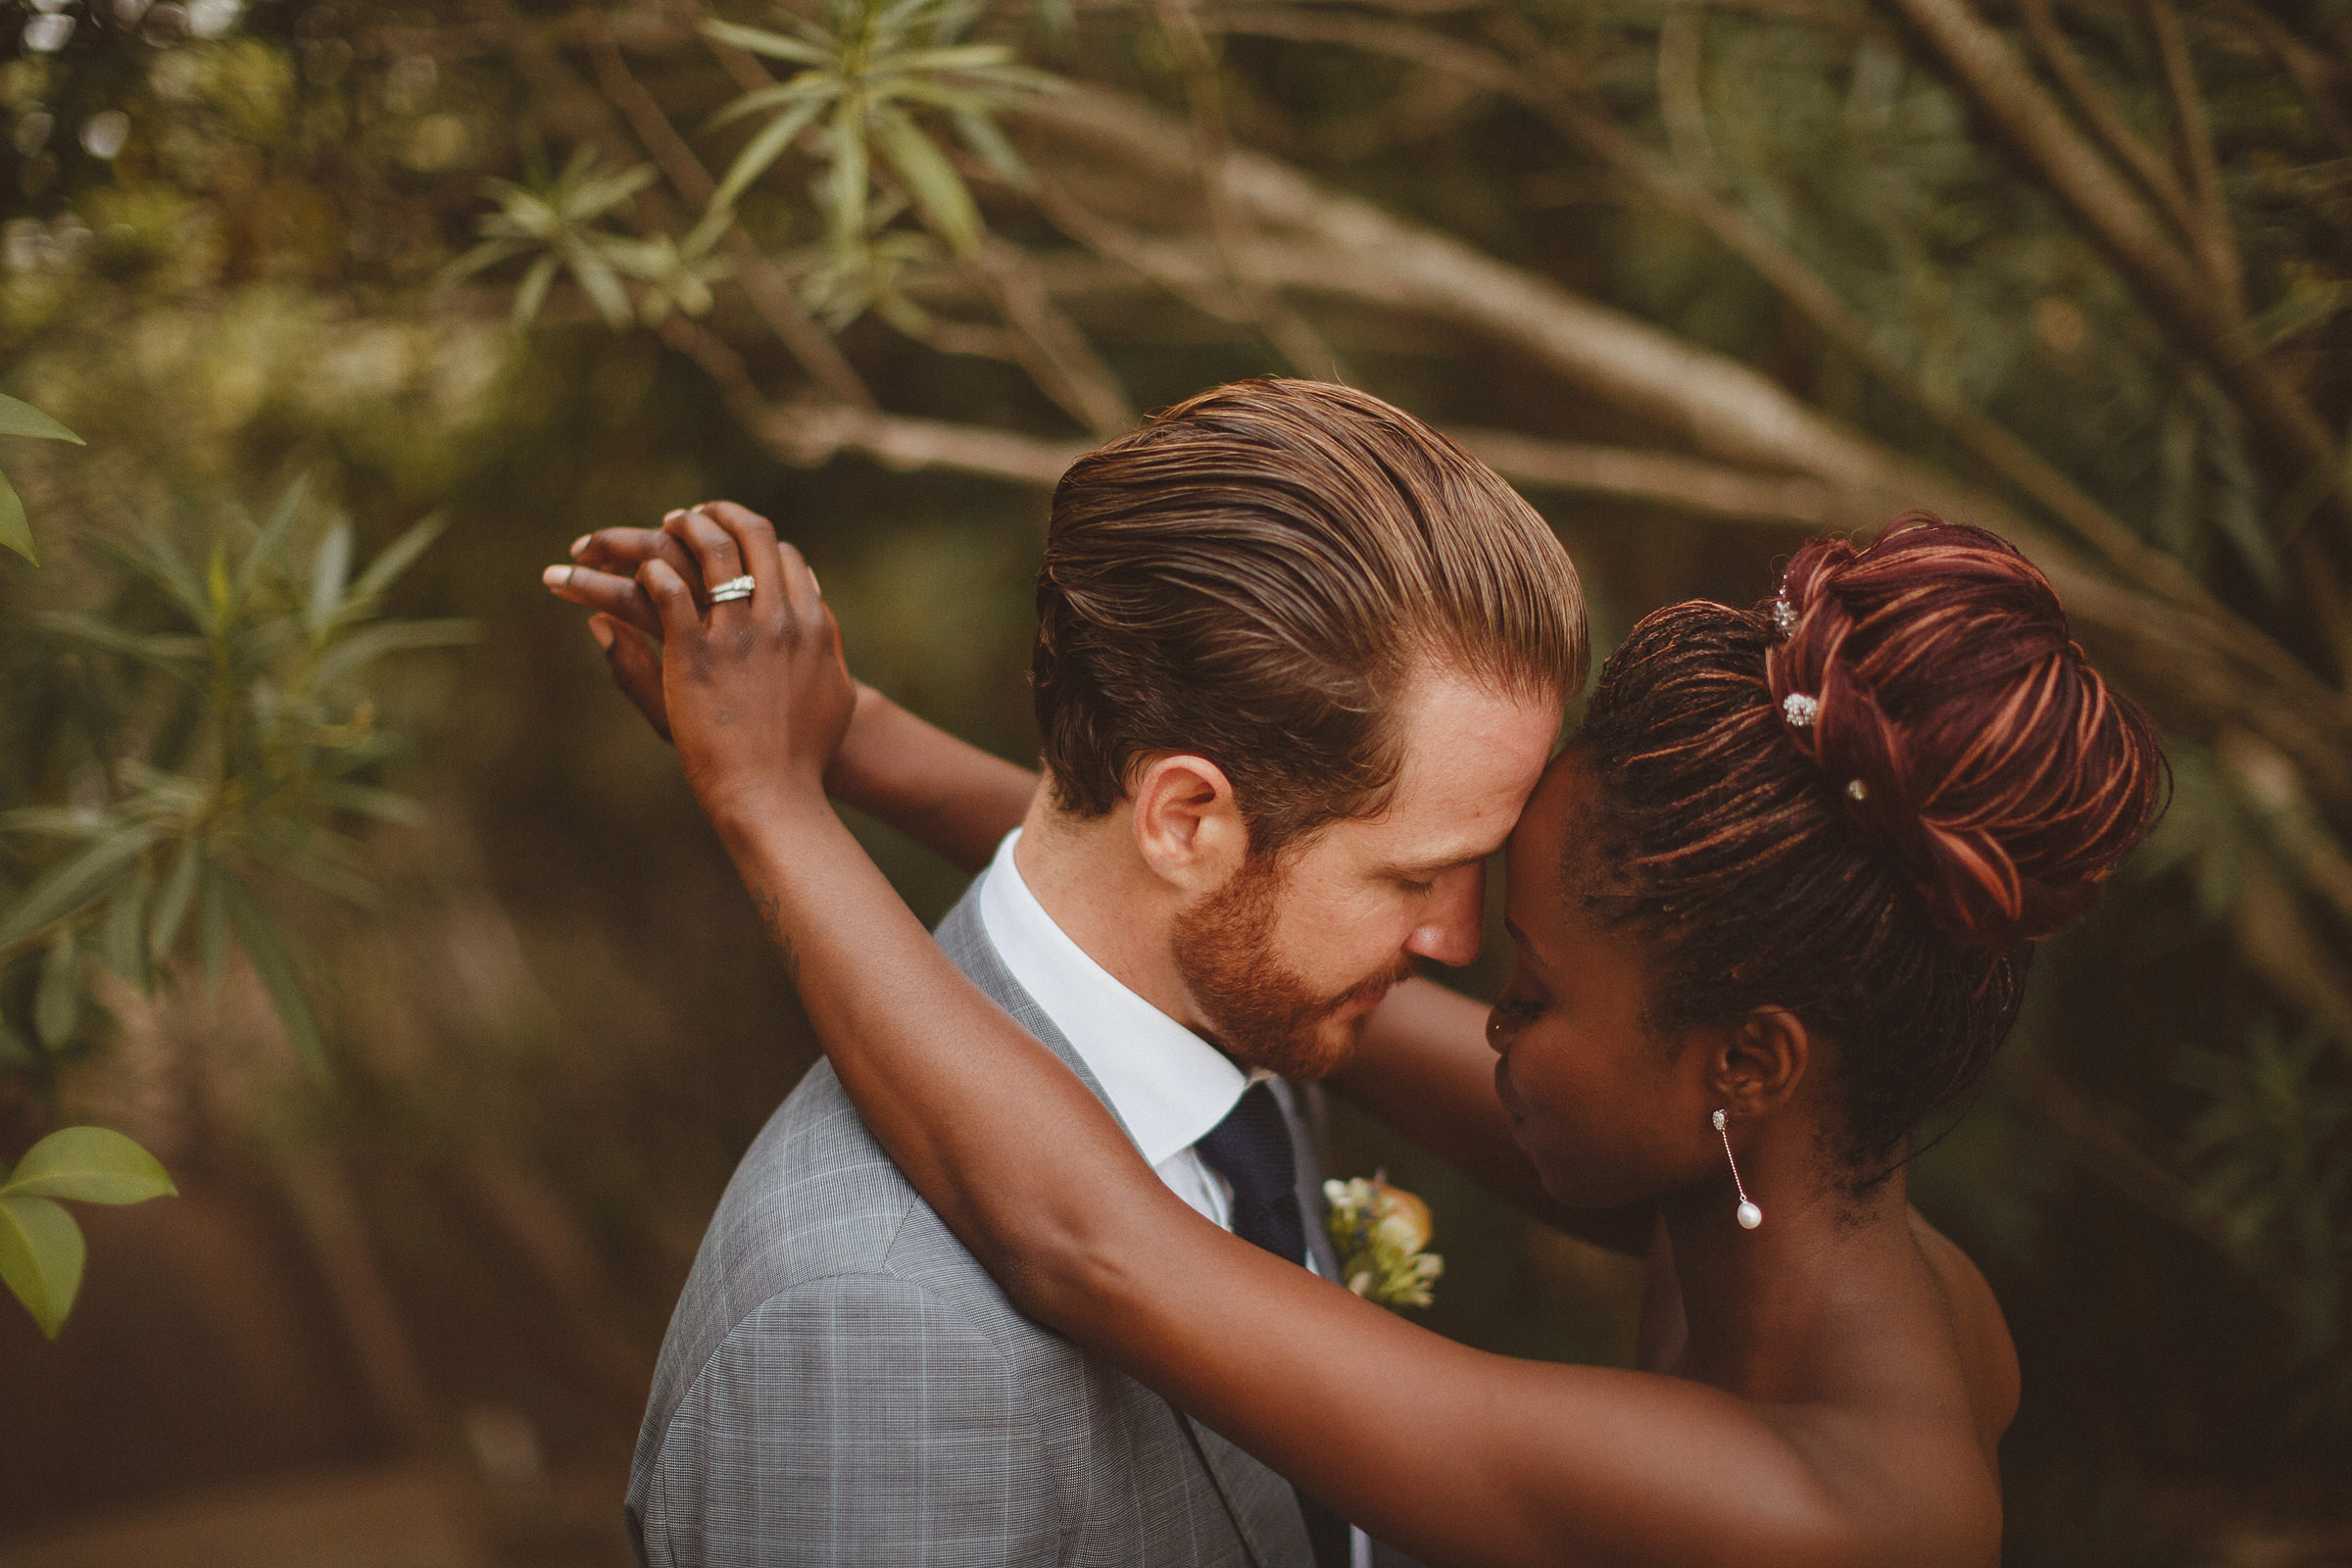 Face to face couple amid foliage - photo by Ed Peers Photography